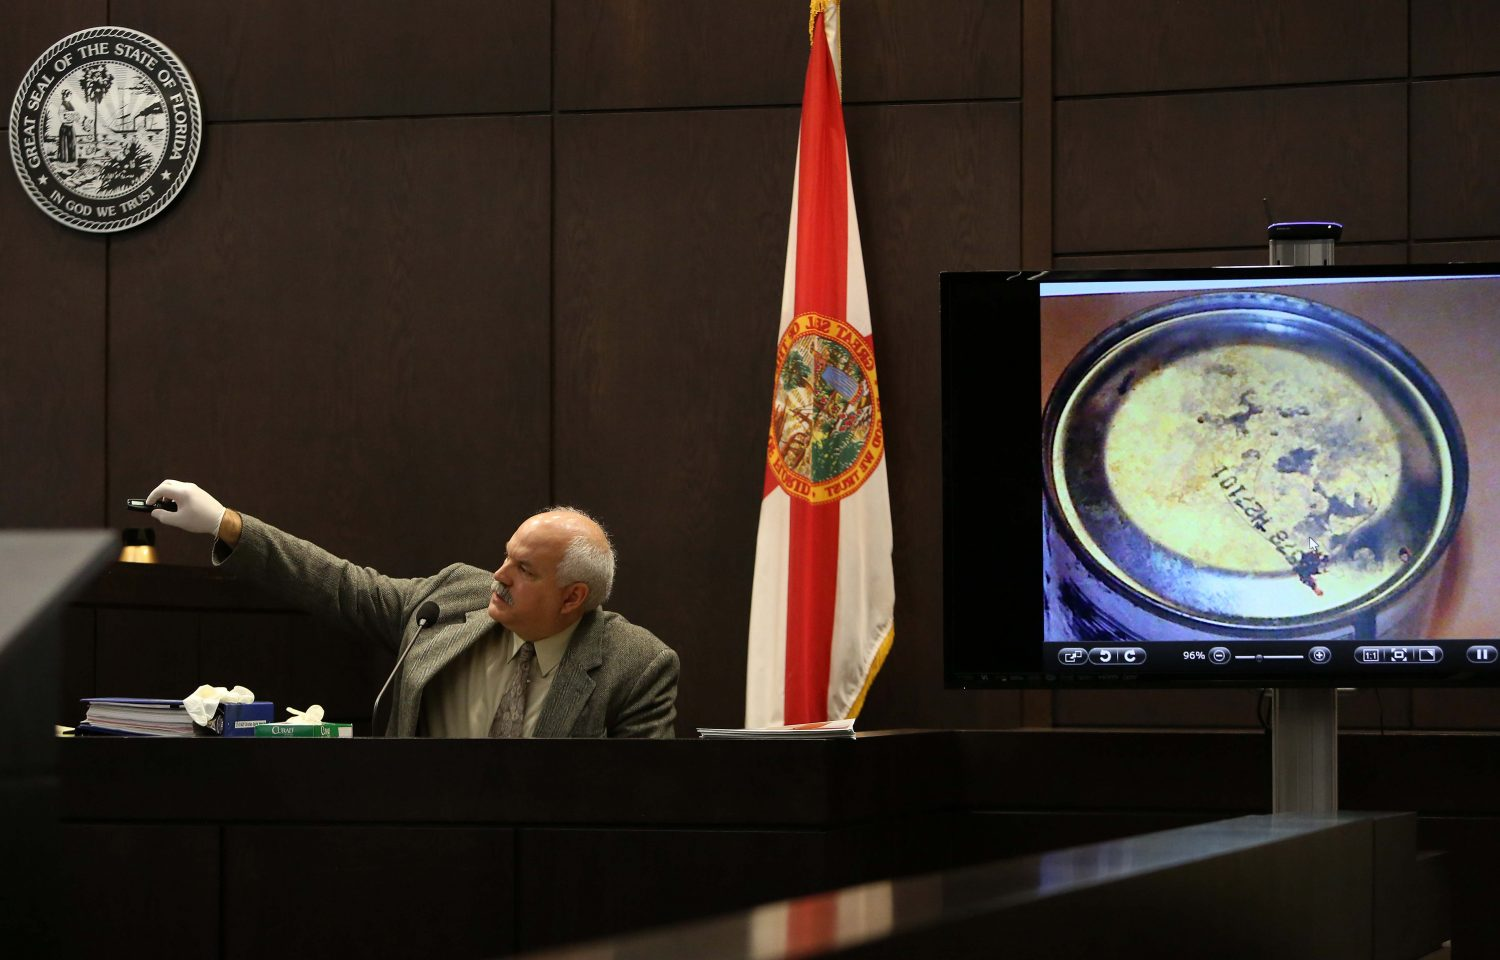 Gainesville Police Crime Scene Investigator Mark Trahan points to blood found on the bottom of a Rust-Oleum paint can that was found during a search of Pedro Bravo's Chevy Blazer in courtroom 1B of the Alachua County Criminal Justice Center Thursday, August 7, 2014.  Bravo is accused of killing University of Florida student Christian Aguilar.  (Doug Finger/The Gainesville Sun/Pool)